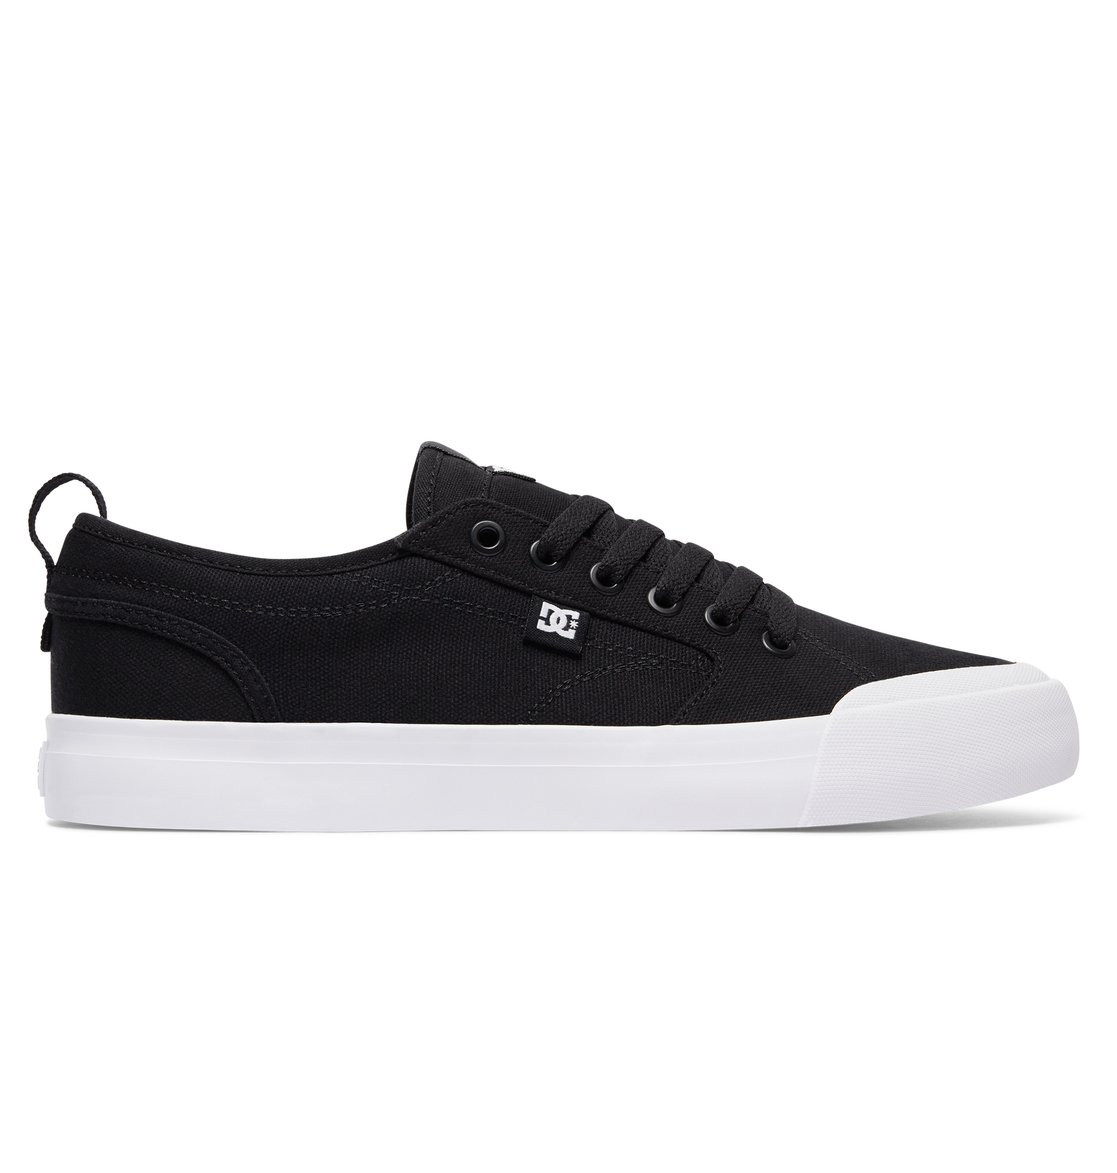 Mens Dc shoes Shoe Evan Smith S sneaker s Mens Black Gum